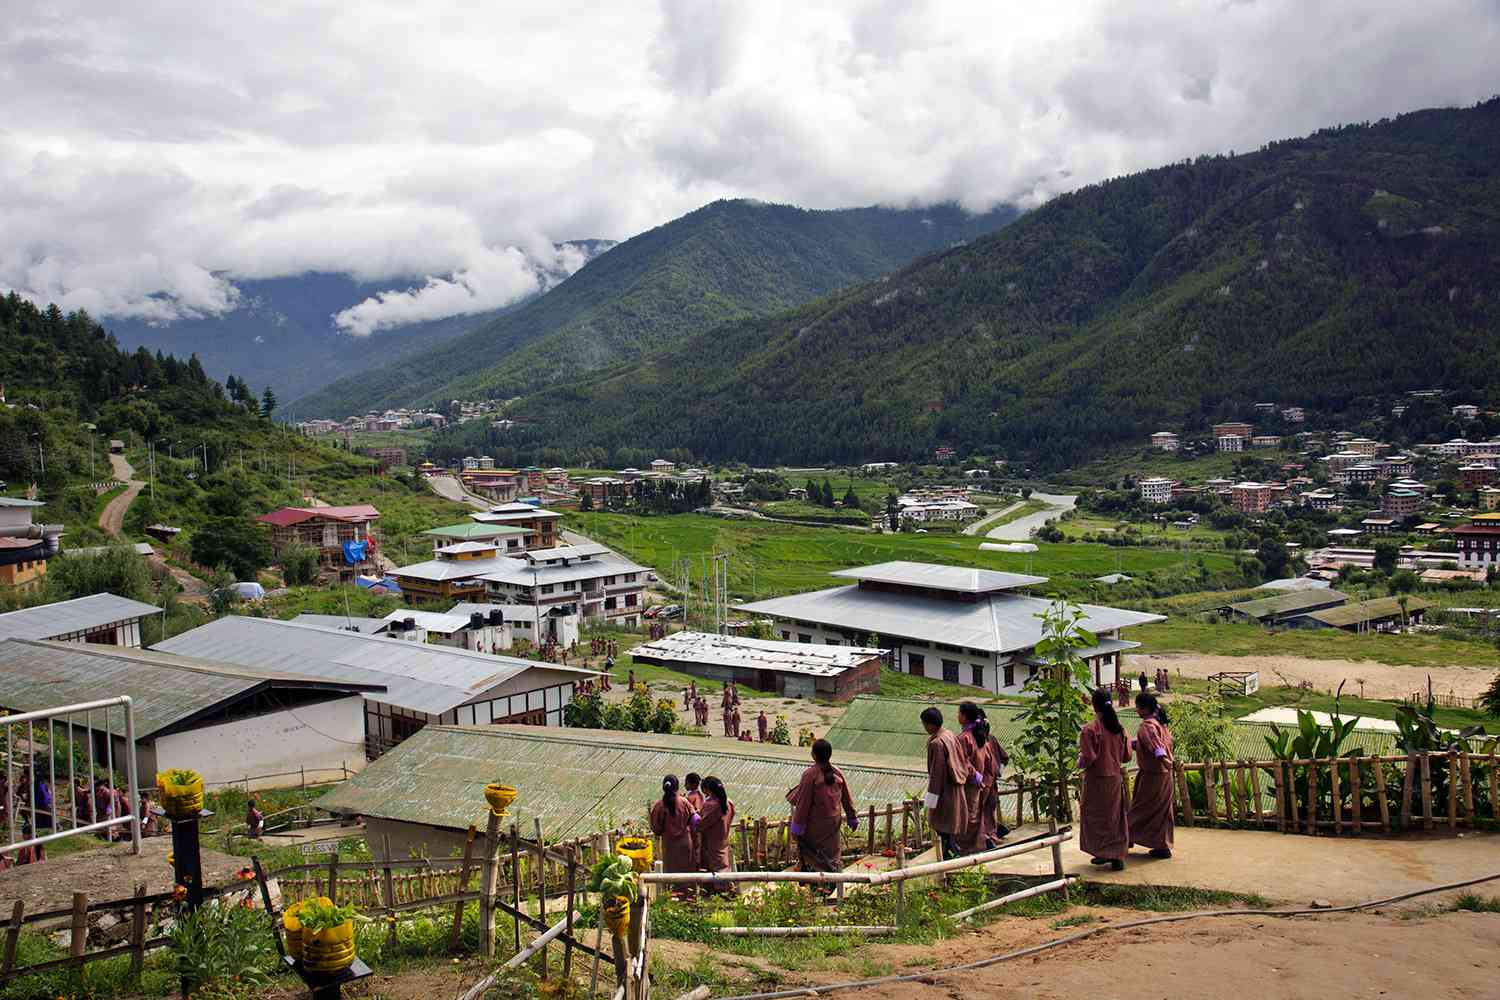 The Himalayan nation of Bhutan was very difficult to settle, due to its site